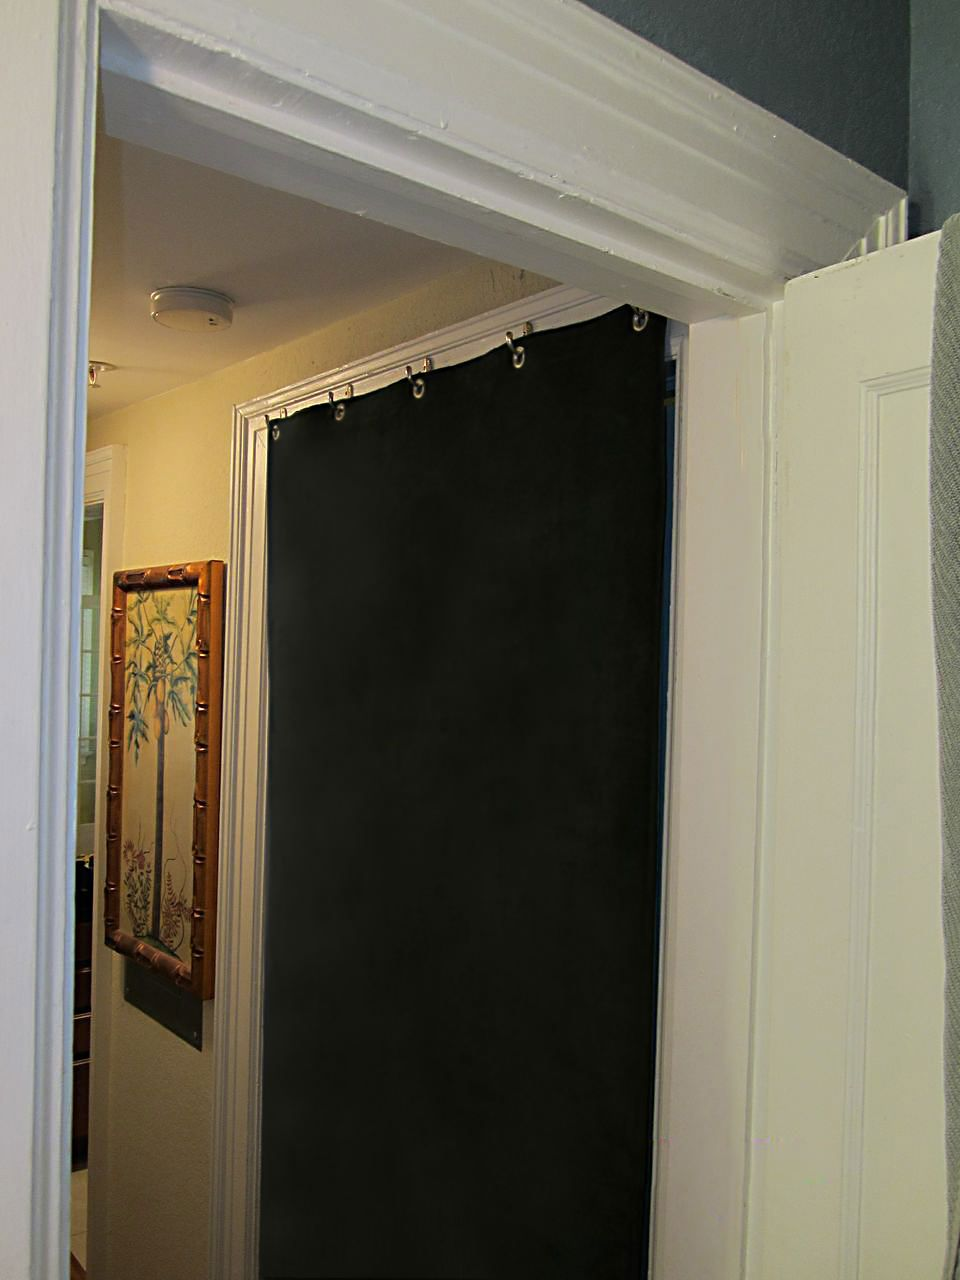 The Acoustidoor Residential Acoustics Sound Proofing Door